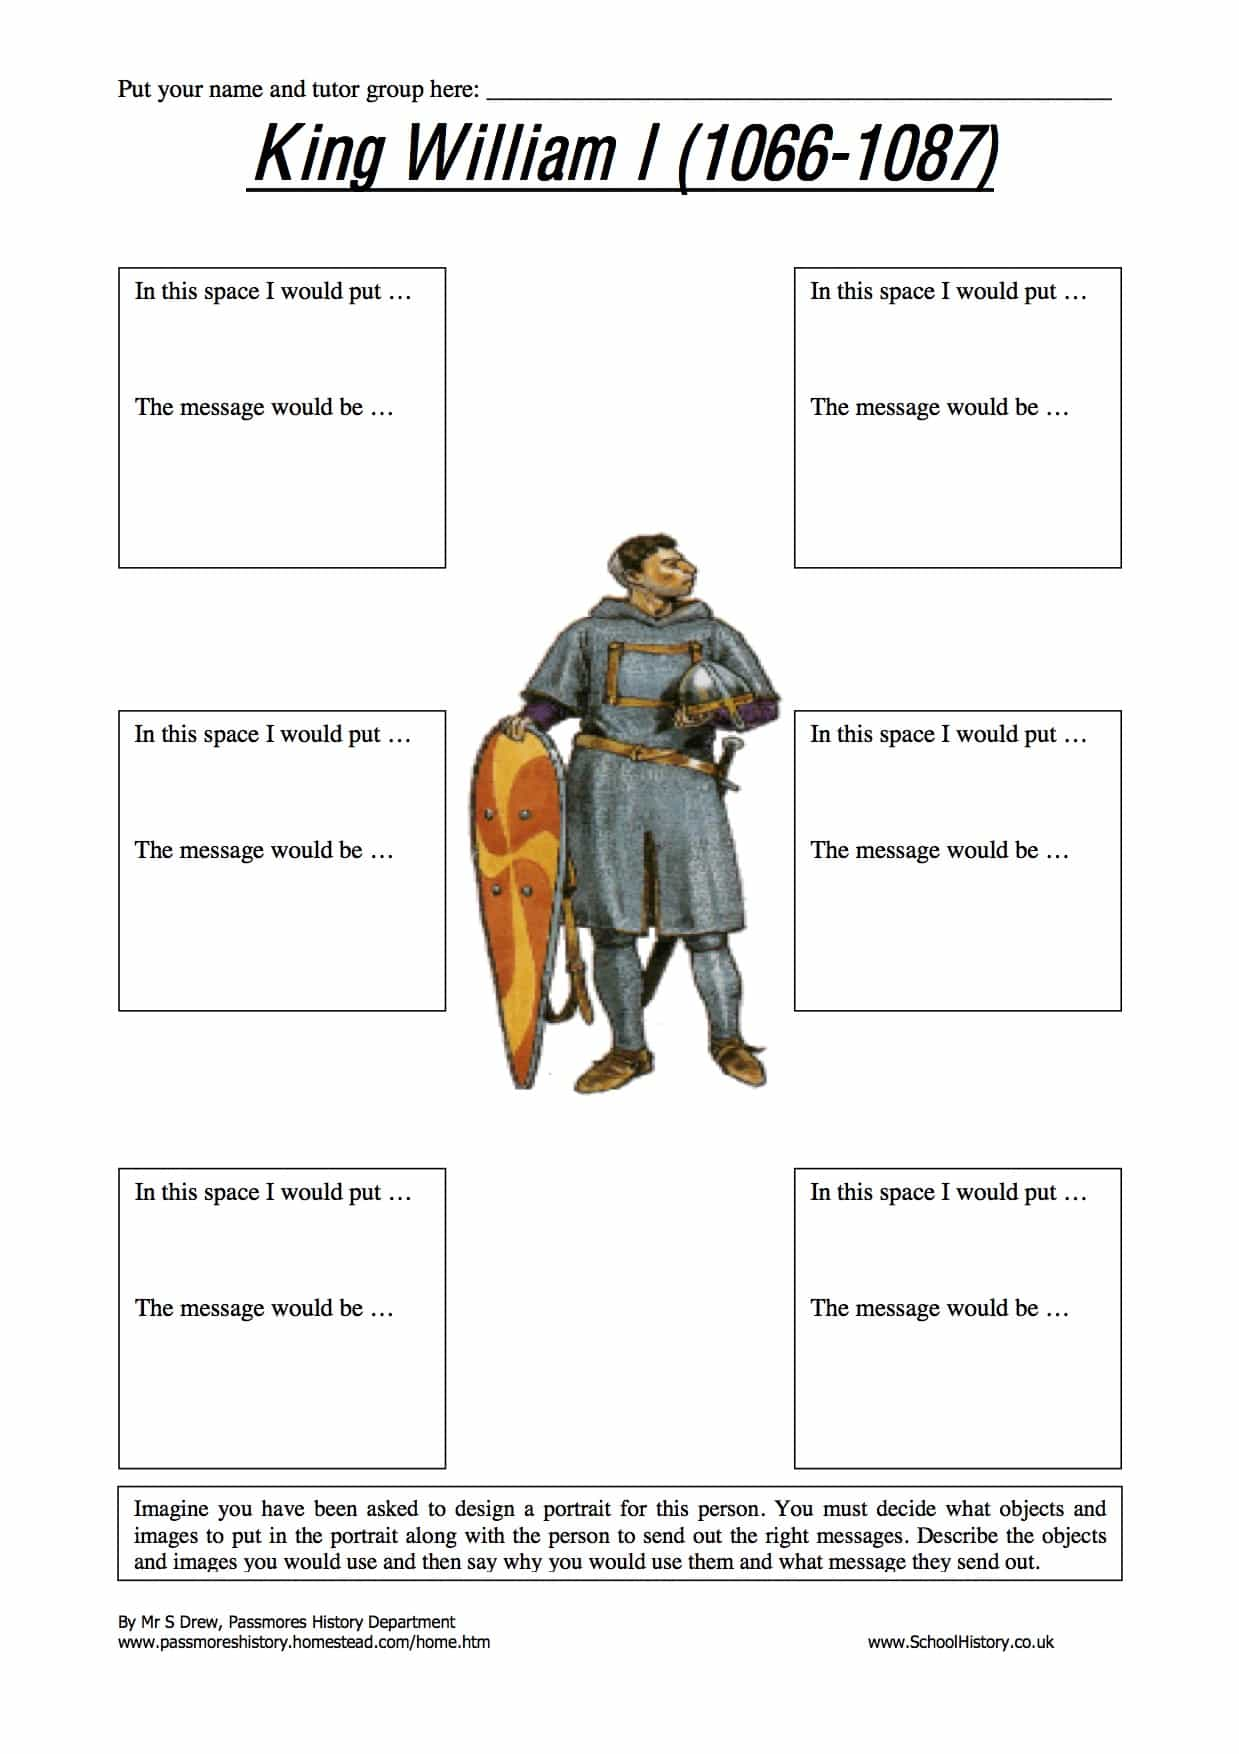 Free History Worksheets | KS3 & KS4 Lesson Plans & Resources